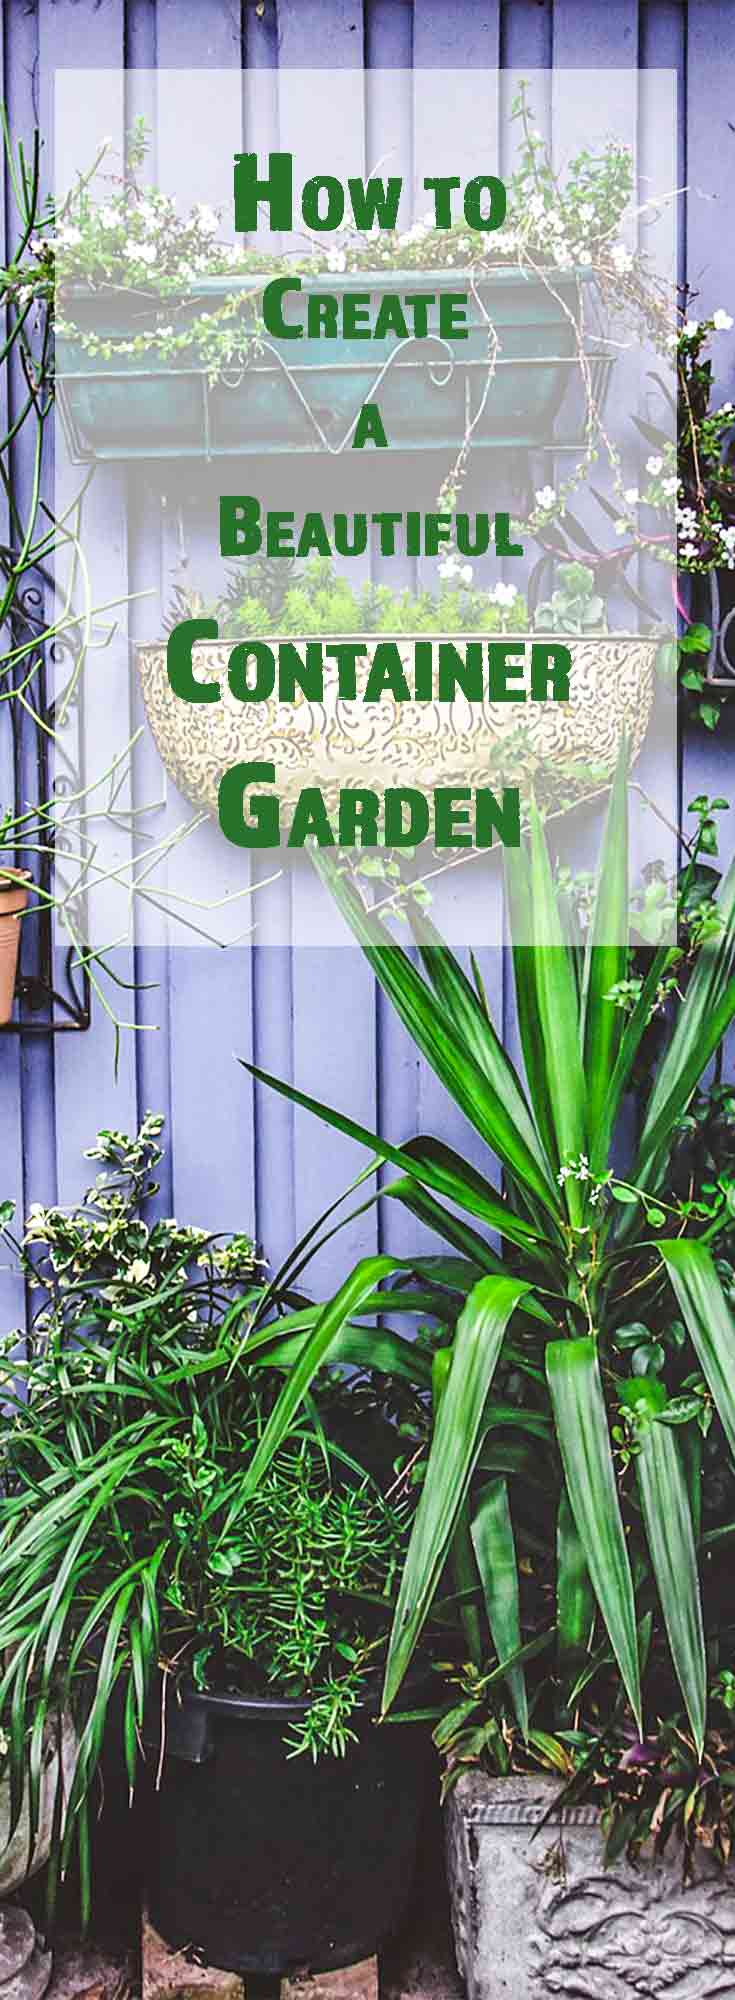 Container gardens are a perfect way to highlight your outdoor space. You don't have to be master gardener to craft a container garden. Follow our 4 simple steps to create a beautiful container garden!